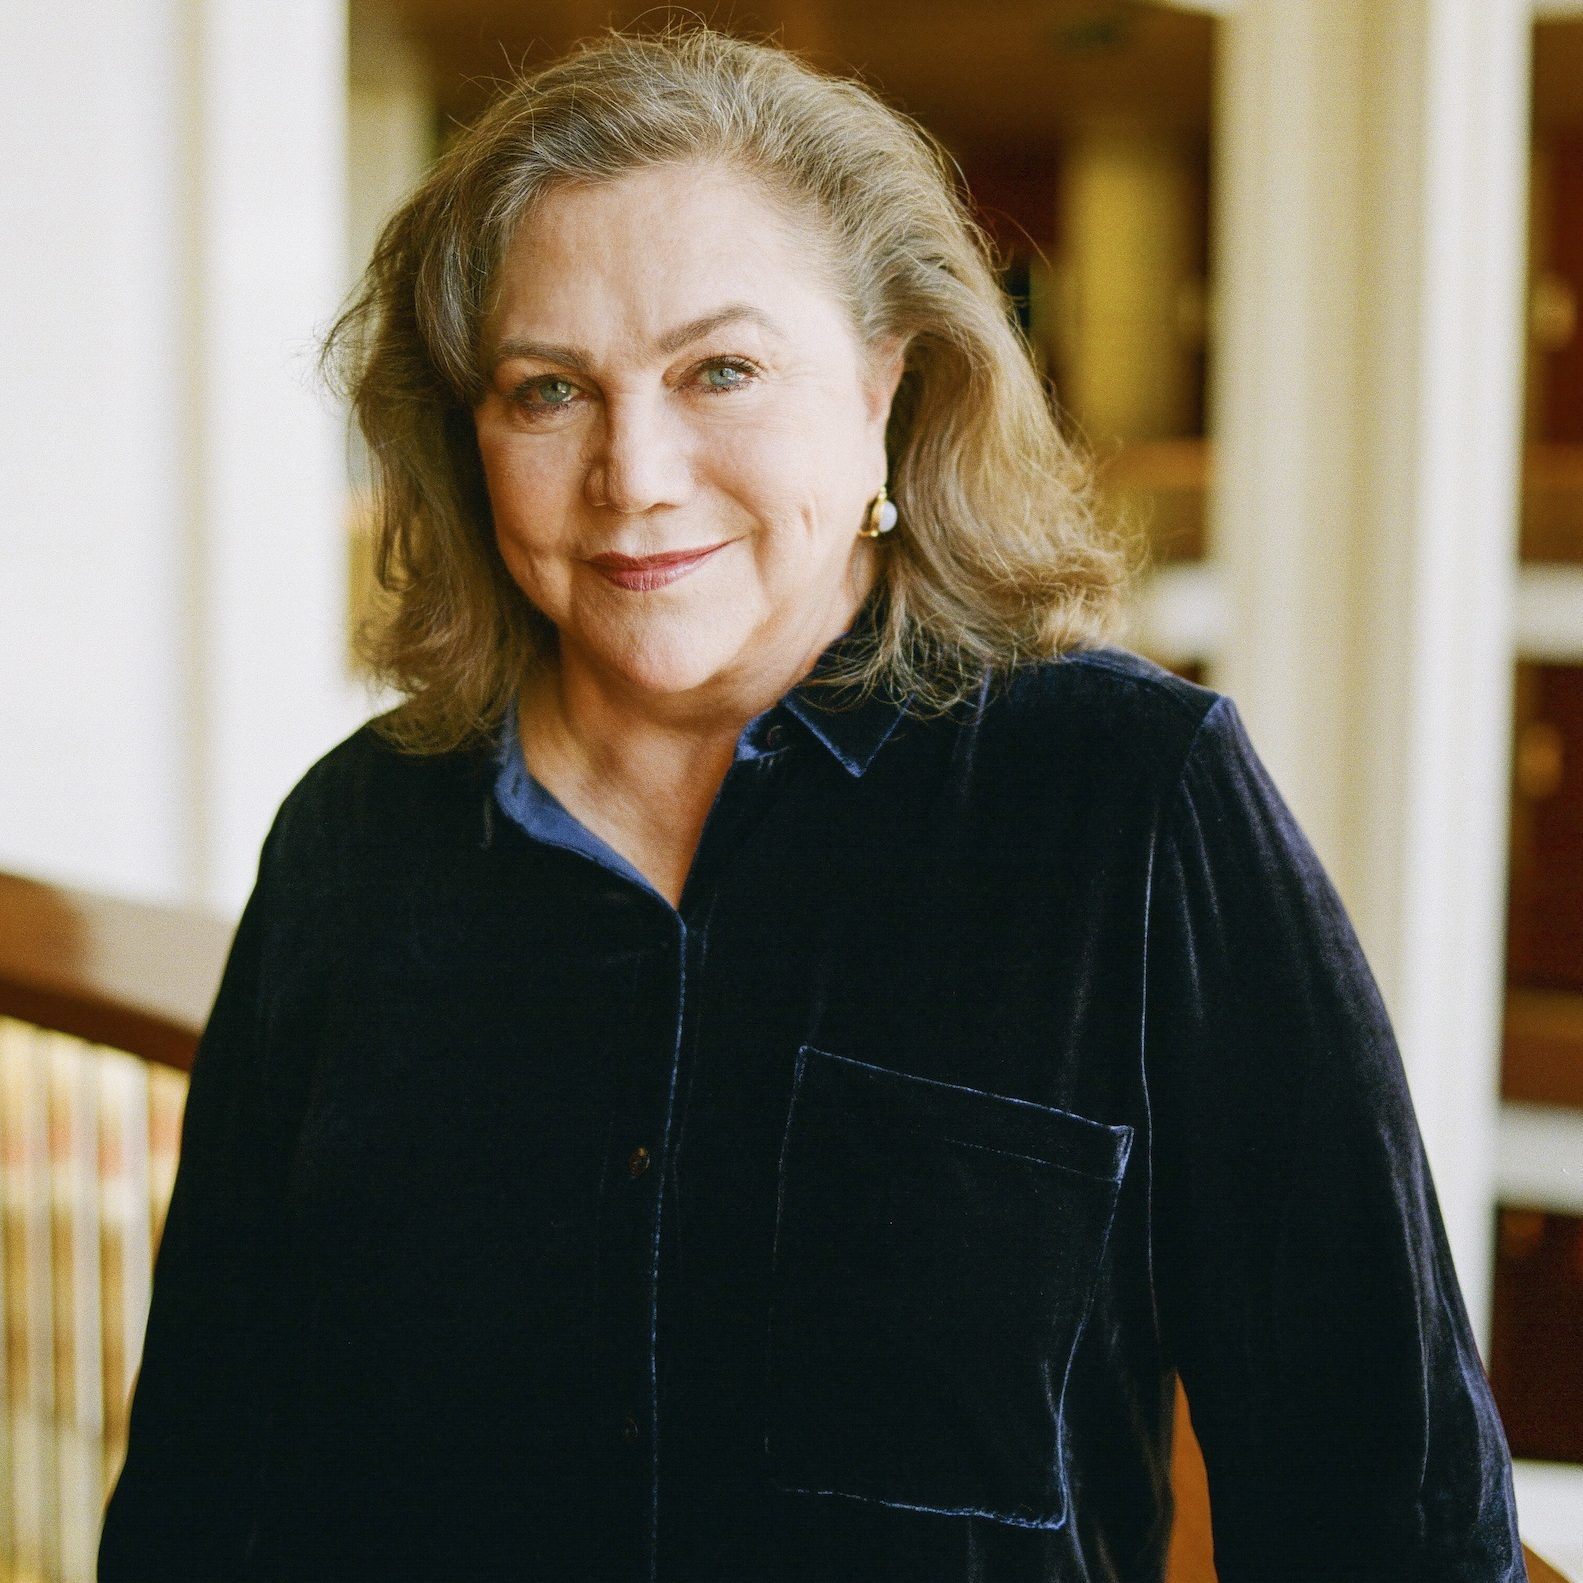 image 5 e1602080715207 20 Things You Probably Didn't Know About Kathleen Turner